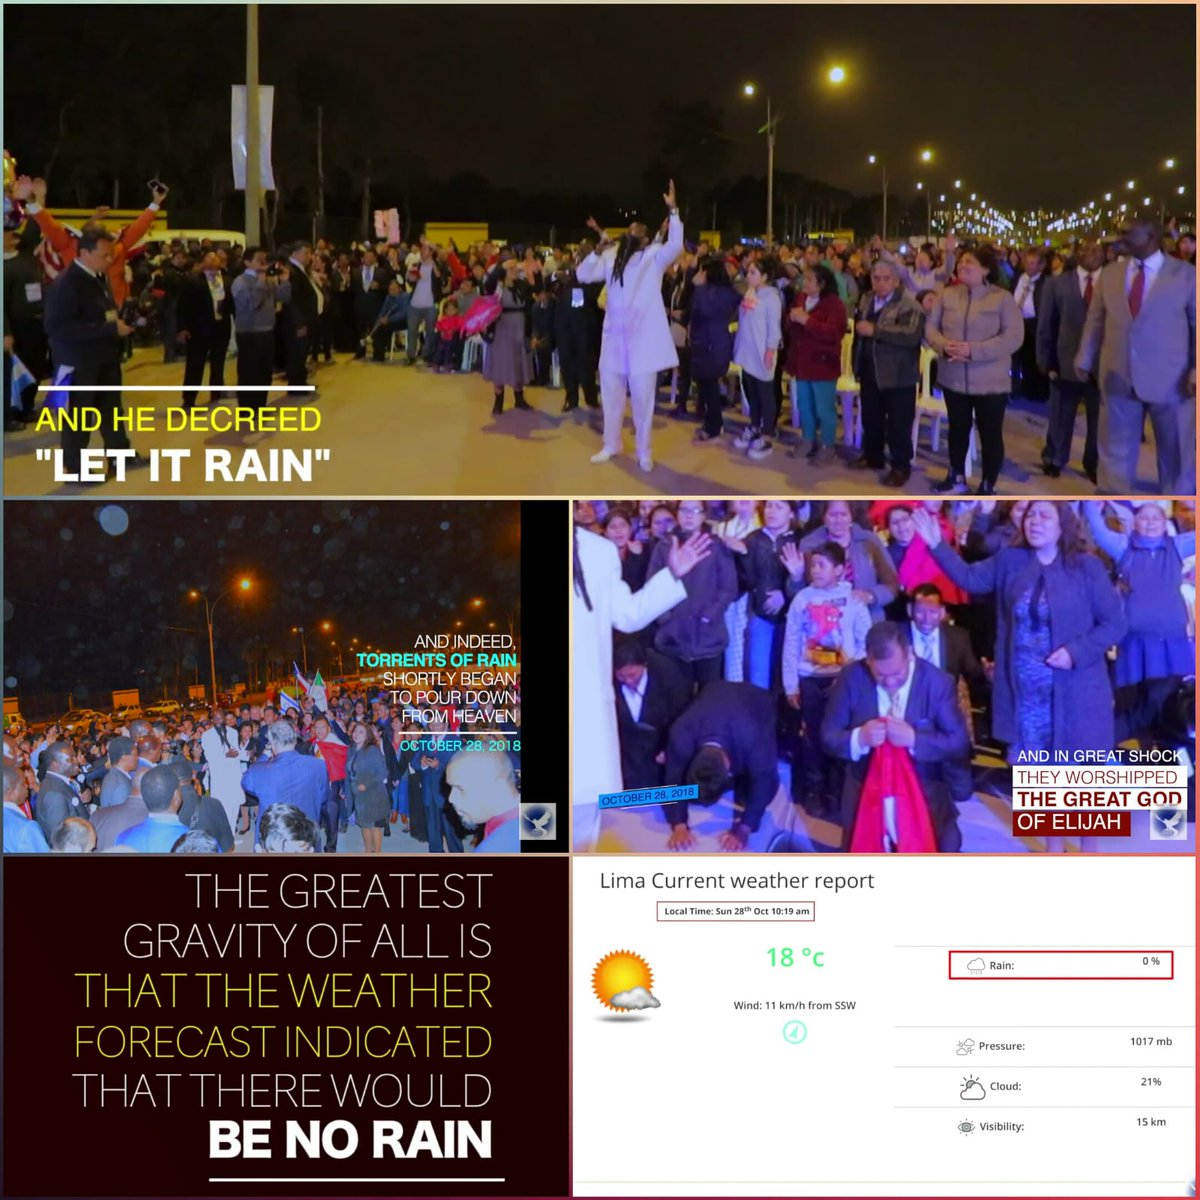 Look  at   Psalm 147:8 Who covers the heavens with clouds, Who provides rain for the earth, Who makes grass to grow on the mountains. The GOD of the Mightiest Prophets does all this  #TheHeavenlyVisitations